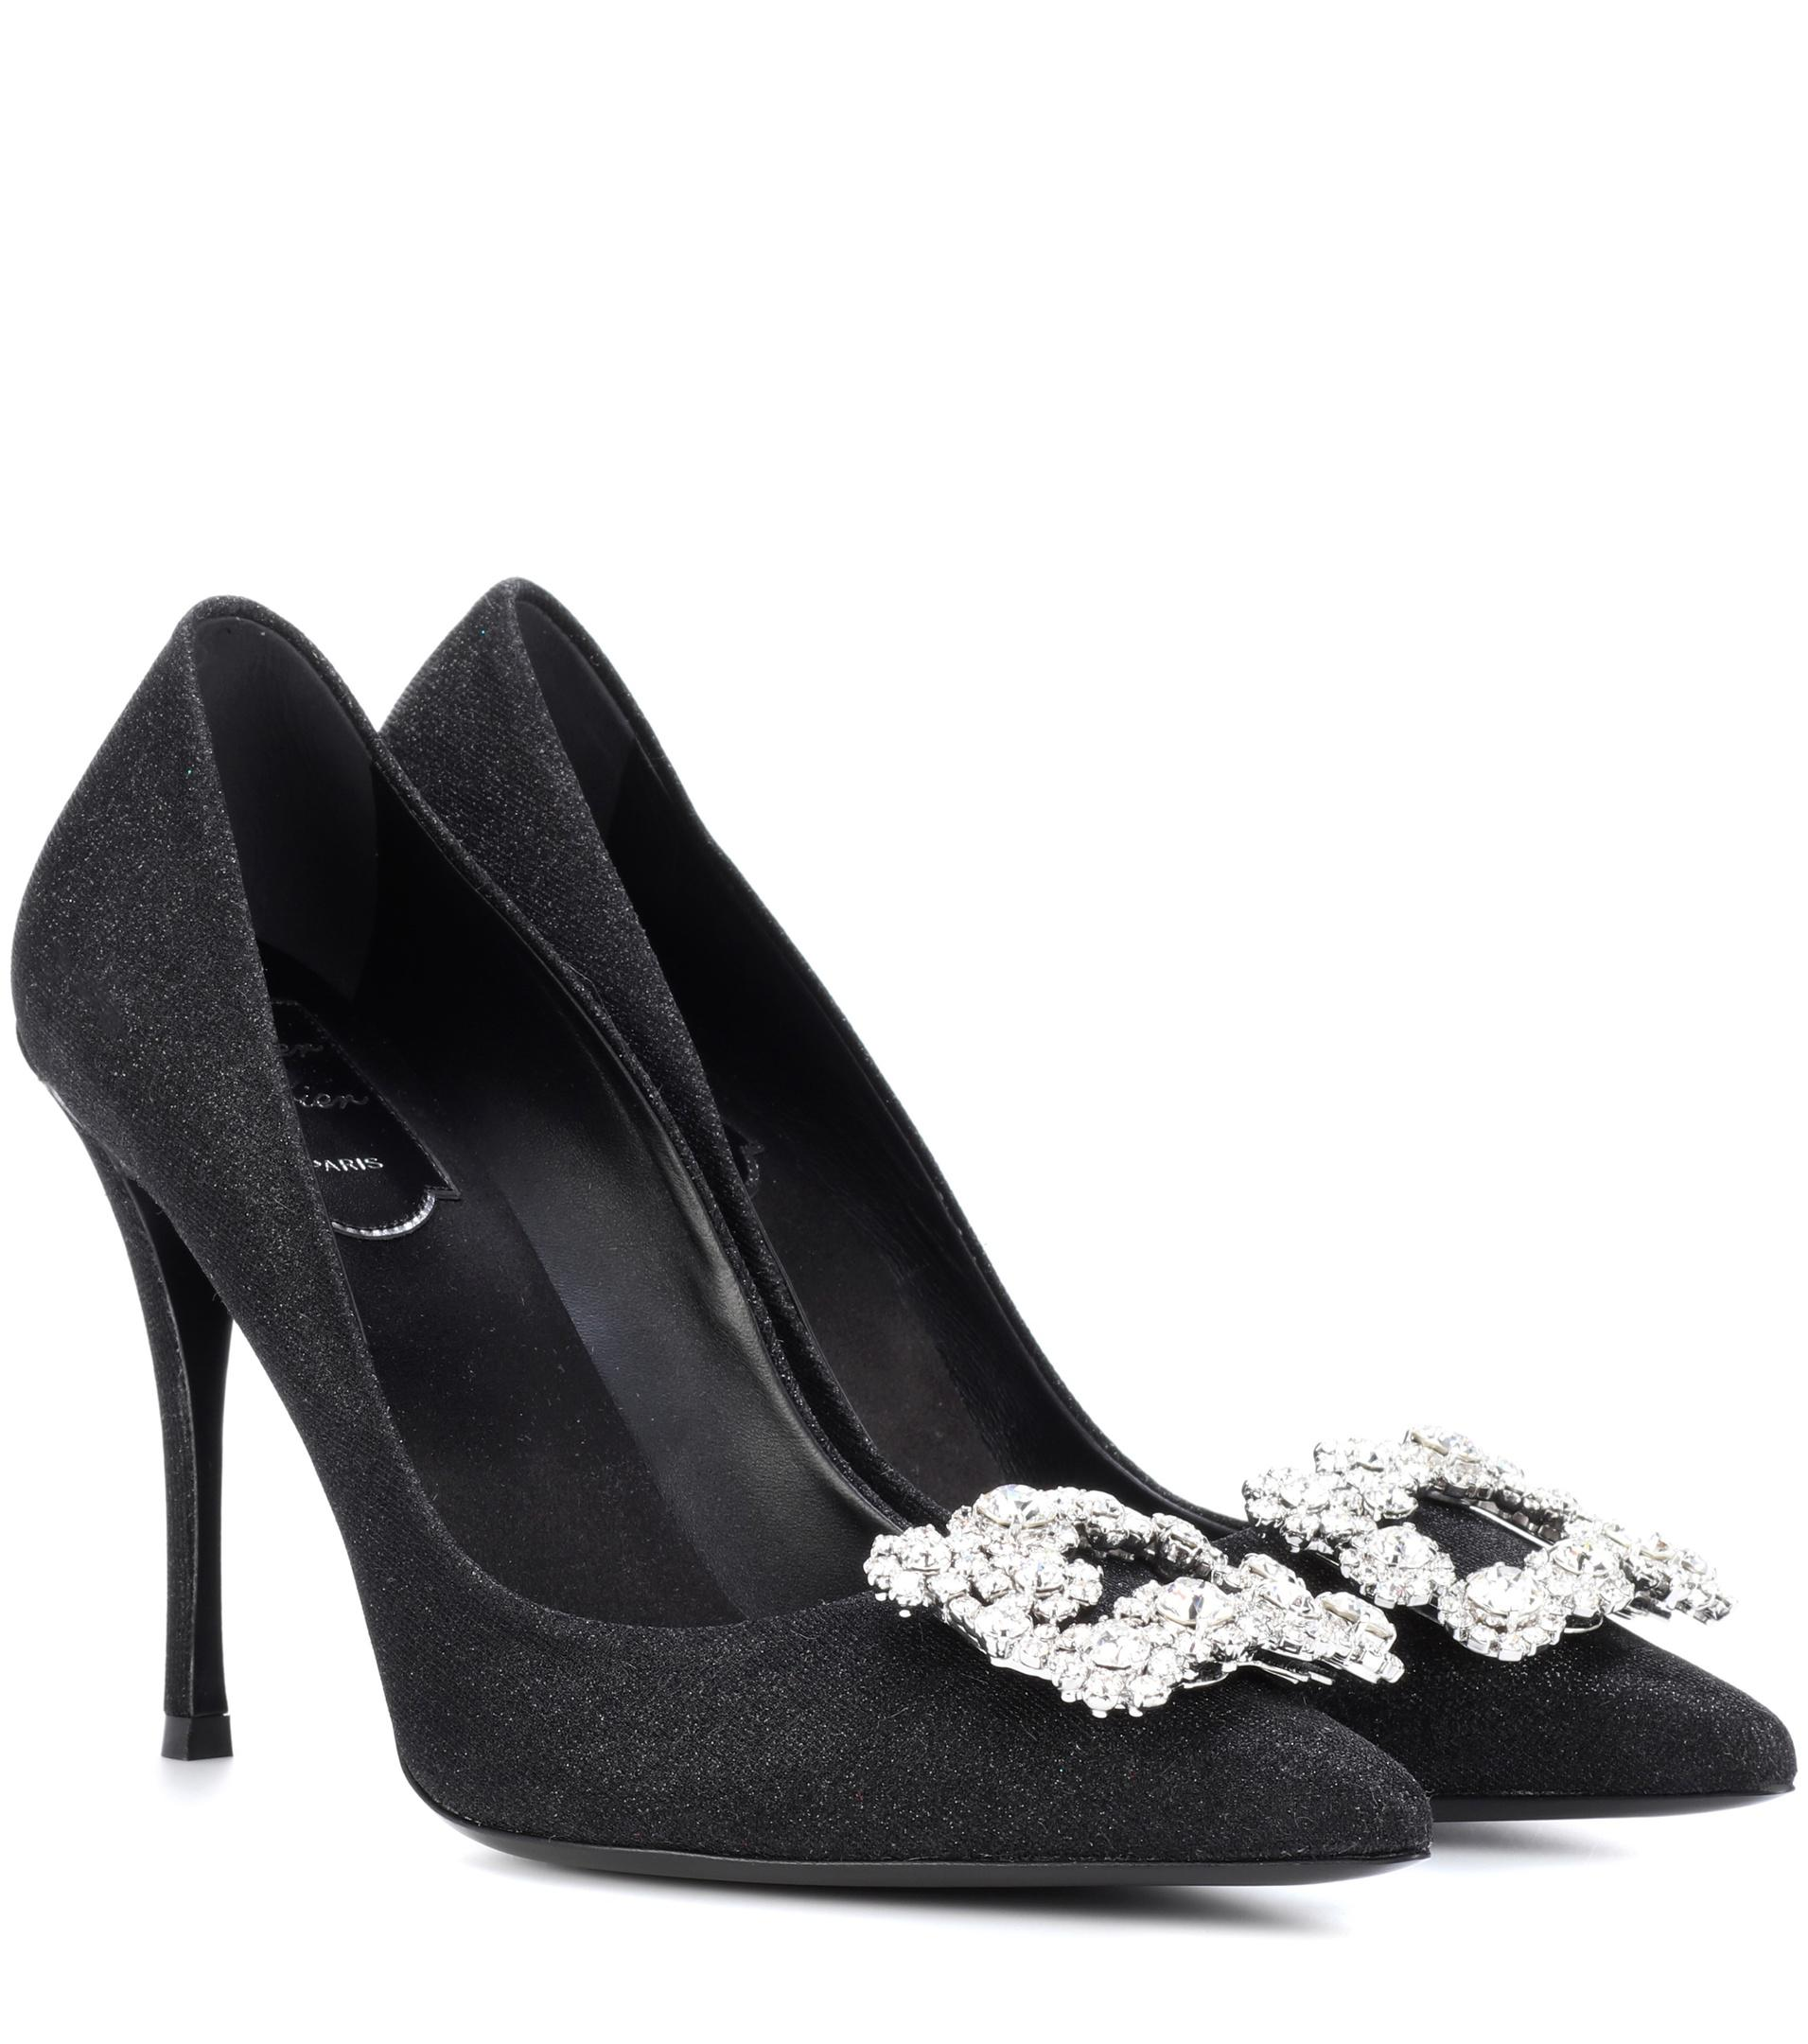 clearance big discount Roger Vivier Strass-Embellished Satin Pumps cheap sale collections shop for online oe9woWRTRJ